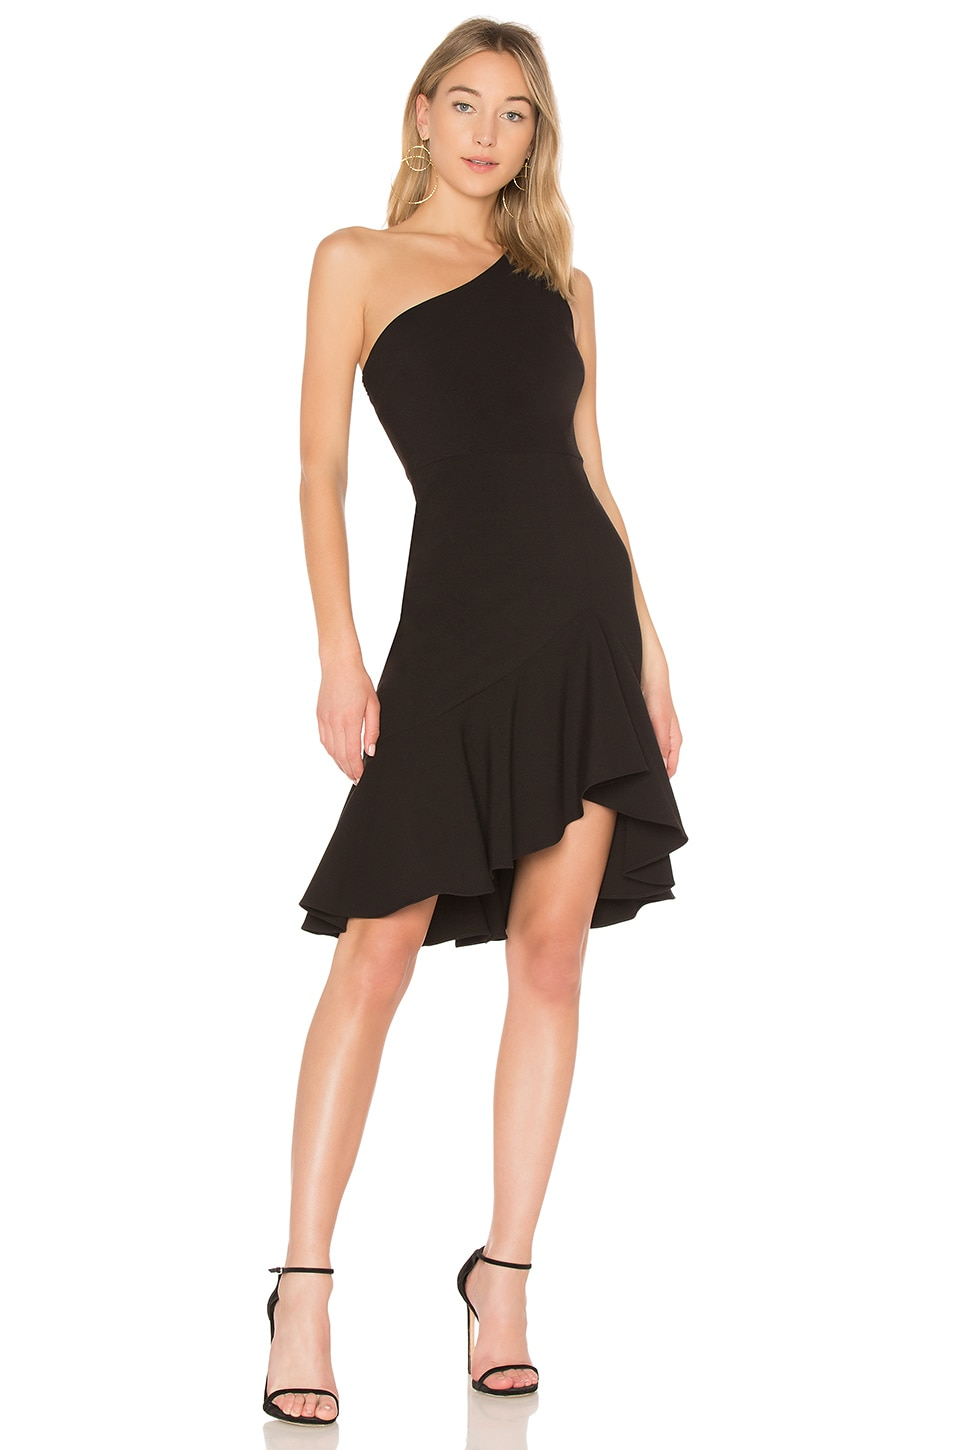 LIKELY Rollins Dress in Black